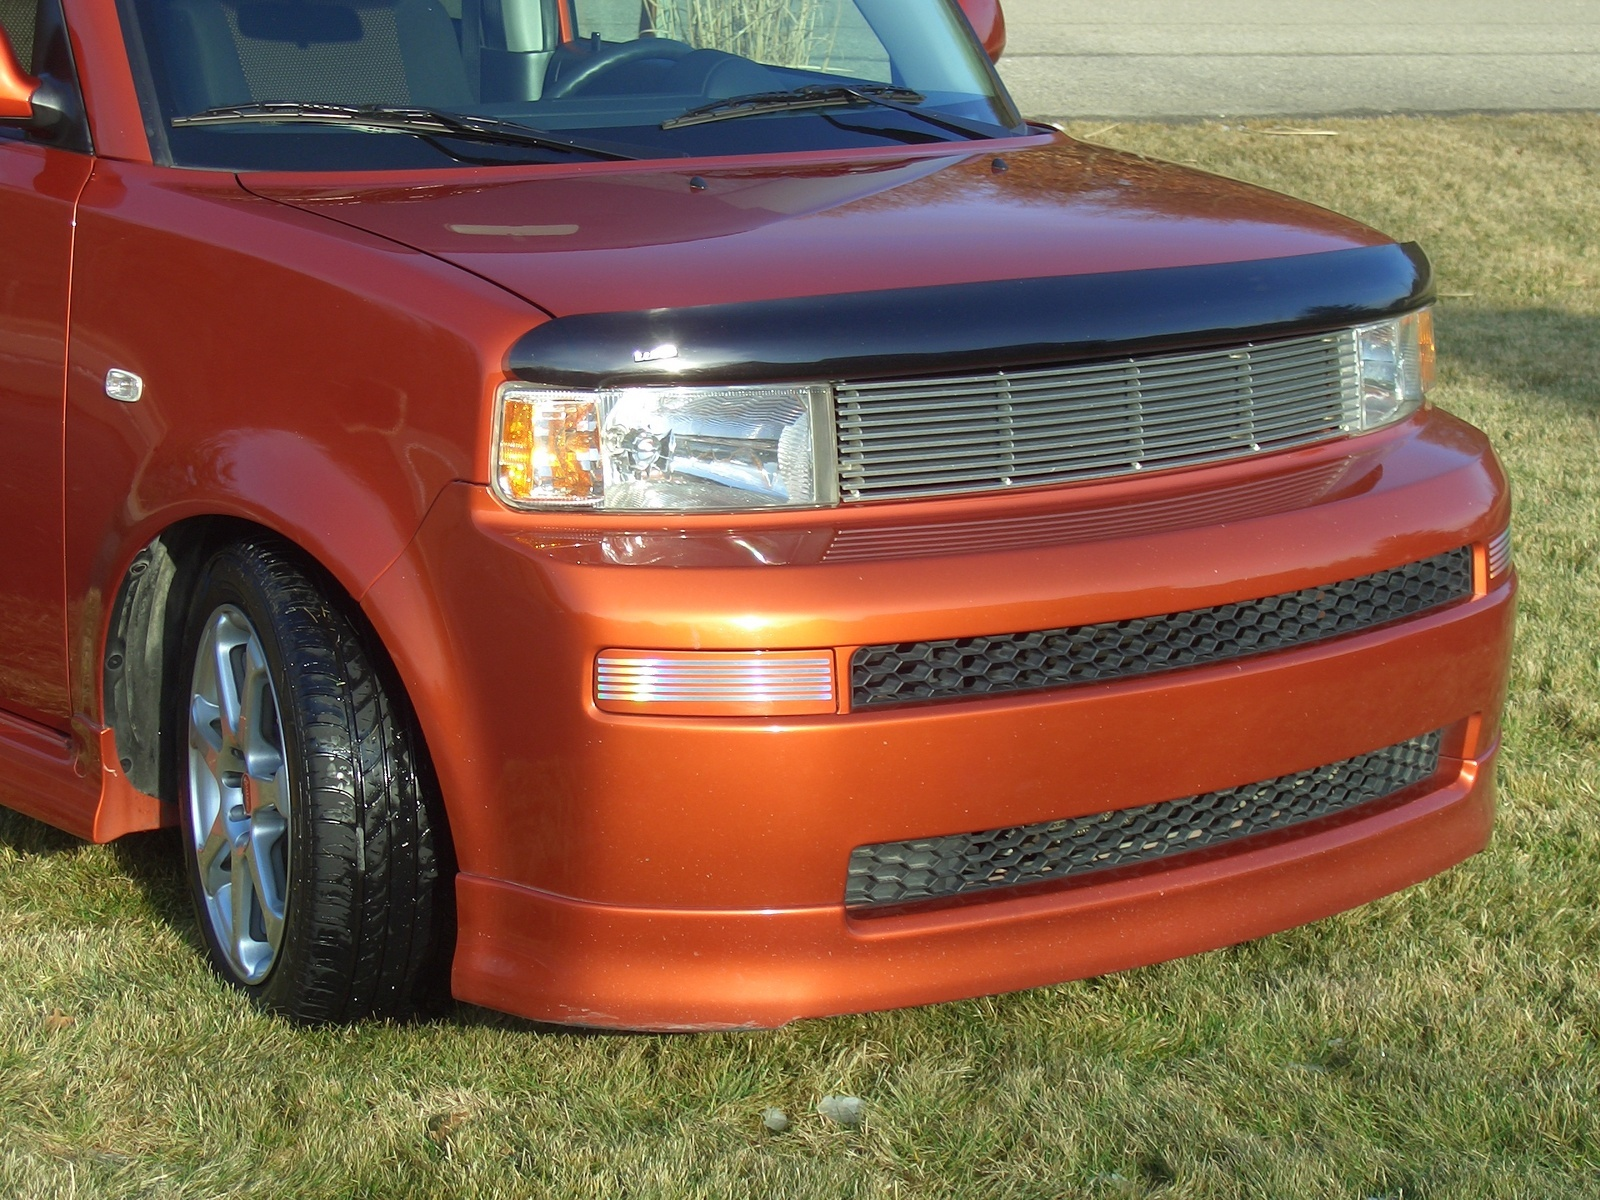 pic new model pics photos photogallery with photo carsbase pictures scion xb com toyota